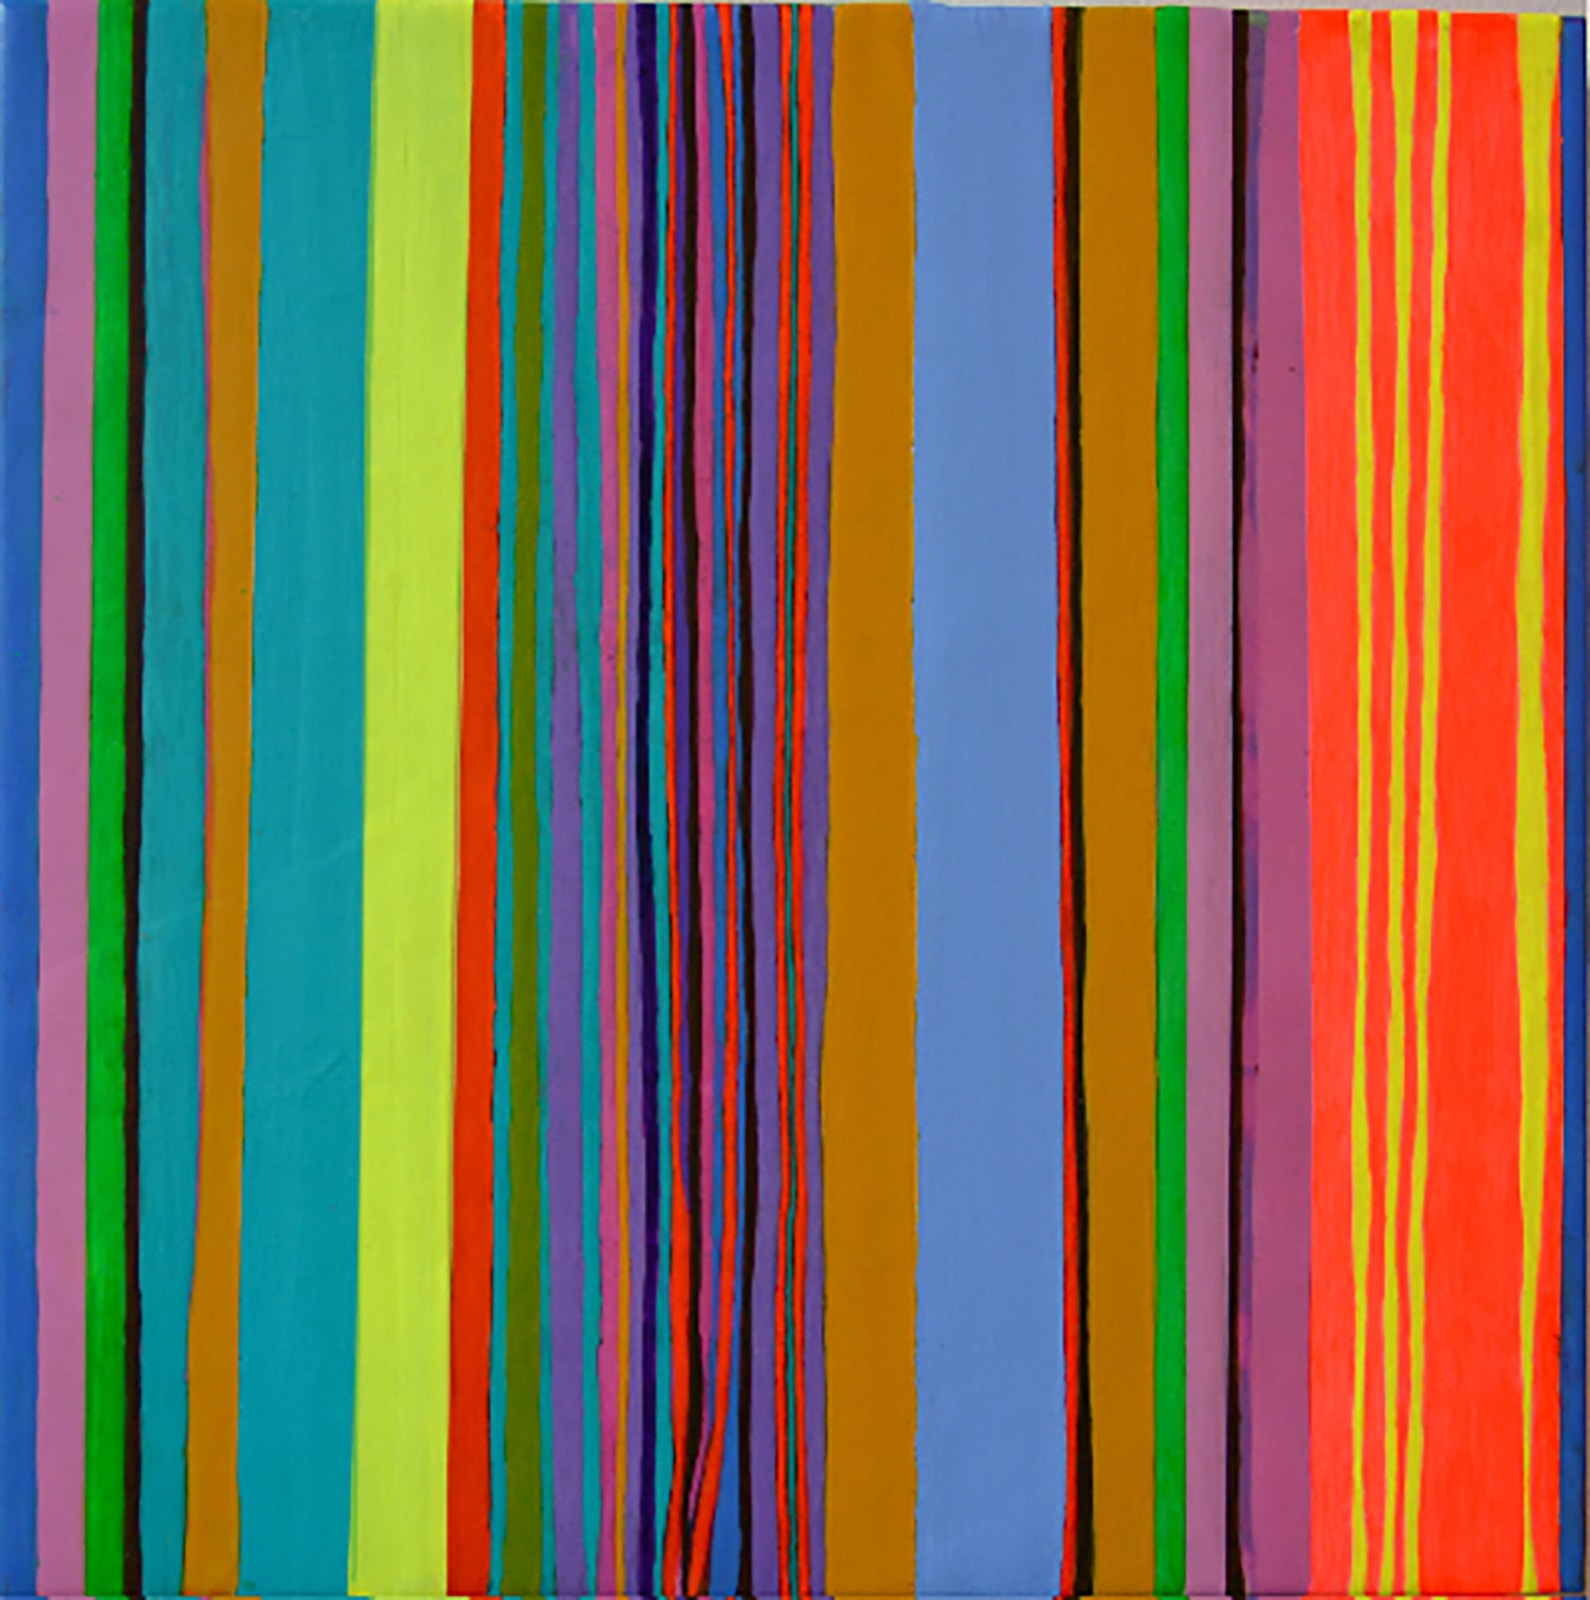 STRIPES, 2016 Acrylic on wood panel 12 x 12 in 30.5 x 30.5 cm HS 45